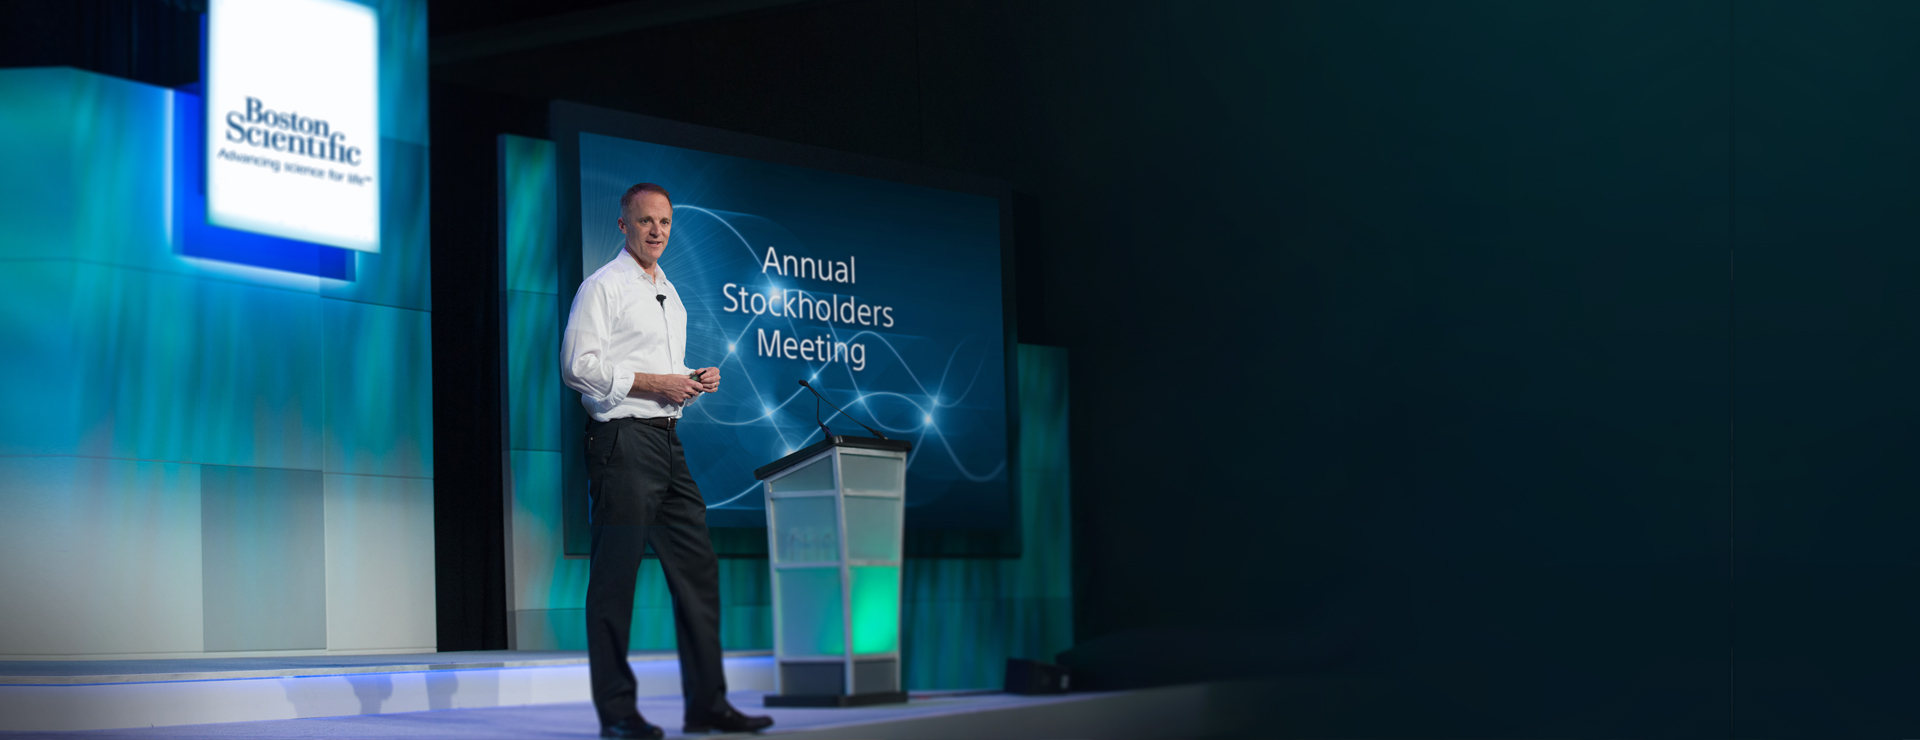 Michael Mahoney on stage at the Annual Stockholders Meeting.